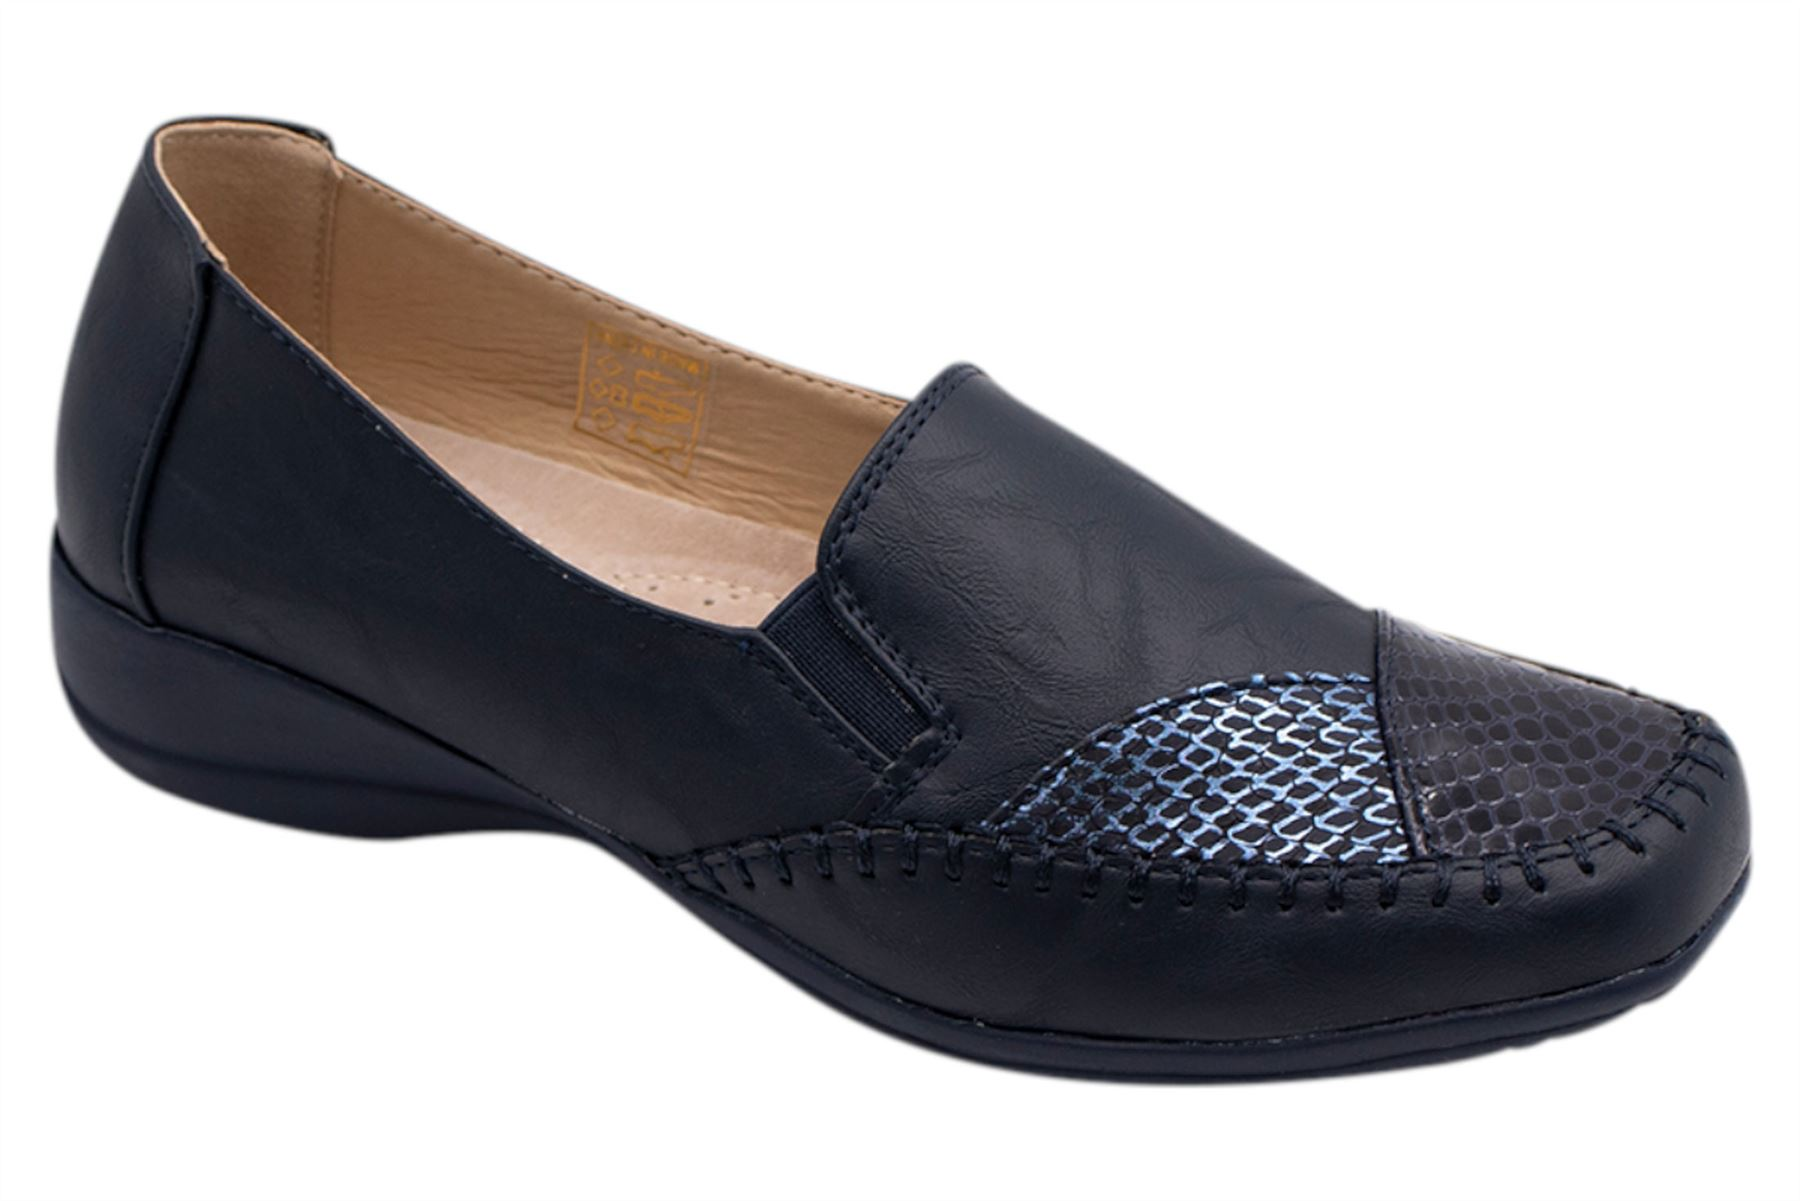 Womens-Flat-Shoes-Ladies-Pumps-Office-Work-Casual-Slip-On-Loafer-Size thumbnail 20